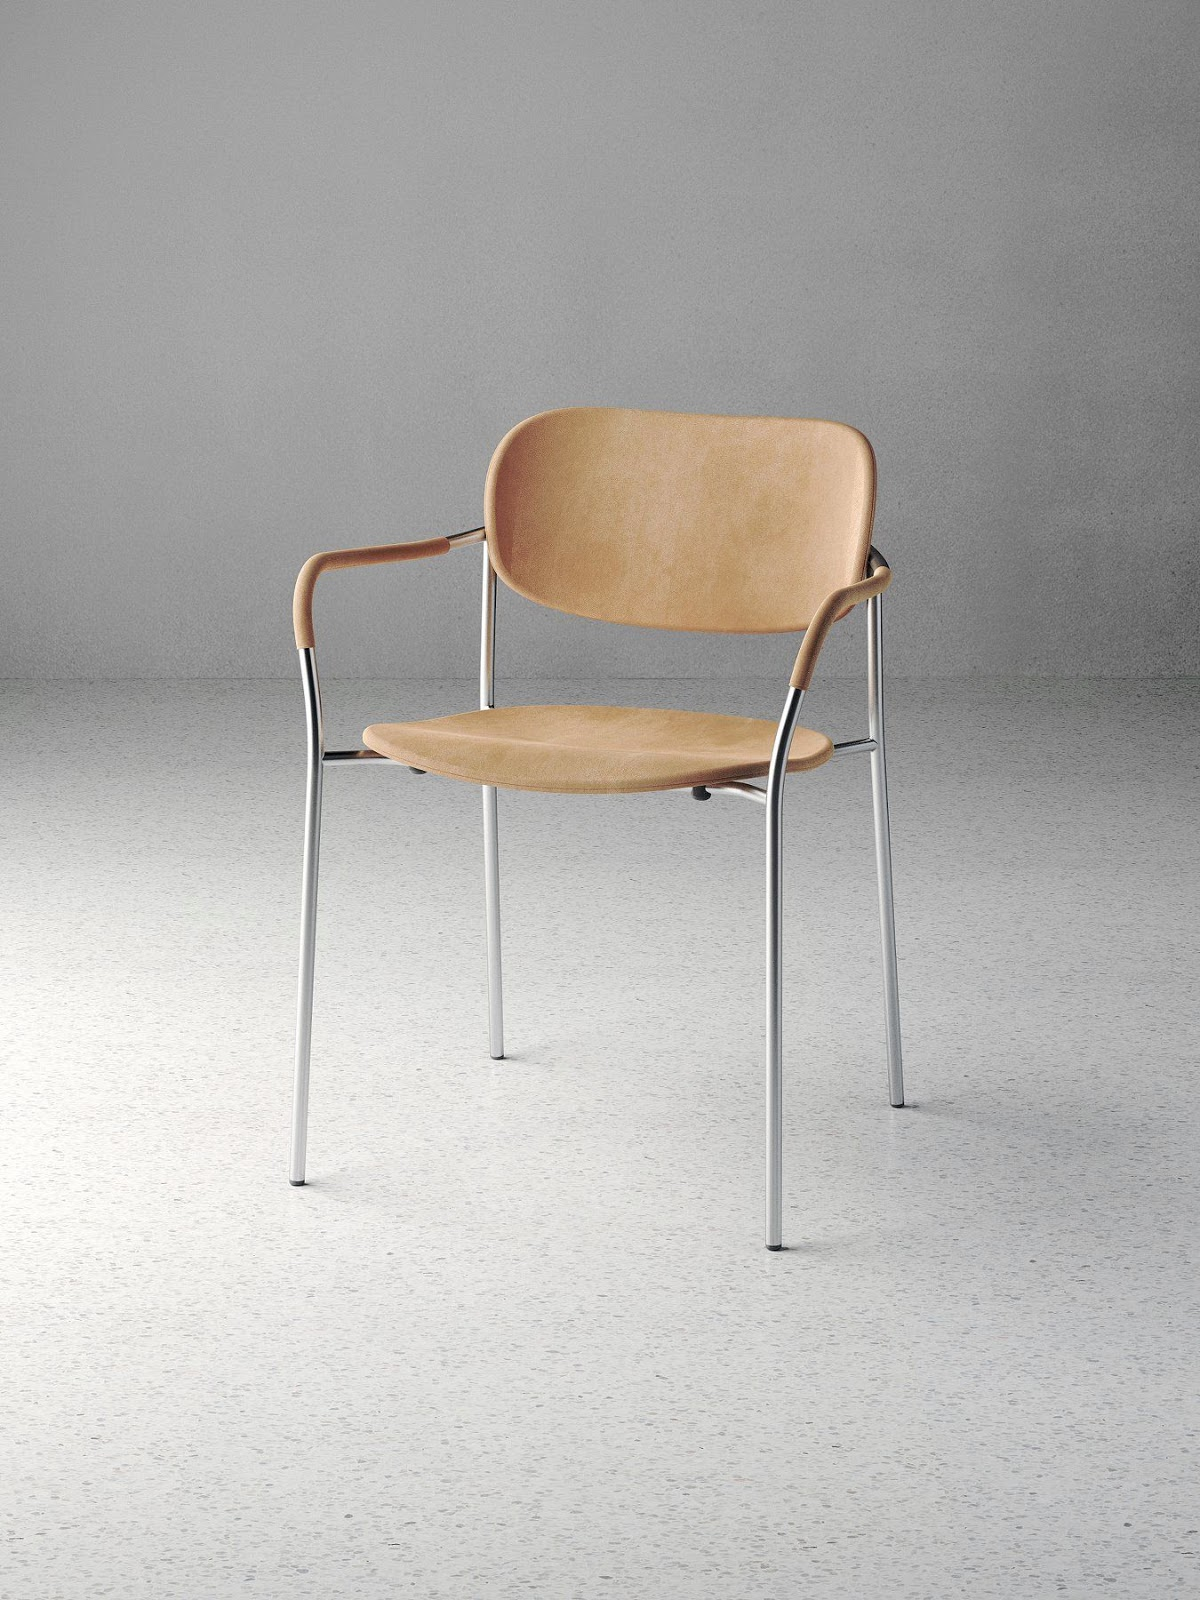 Aura is Norway's National Museum winner in new chair competition